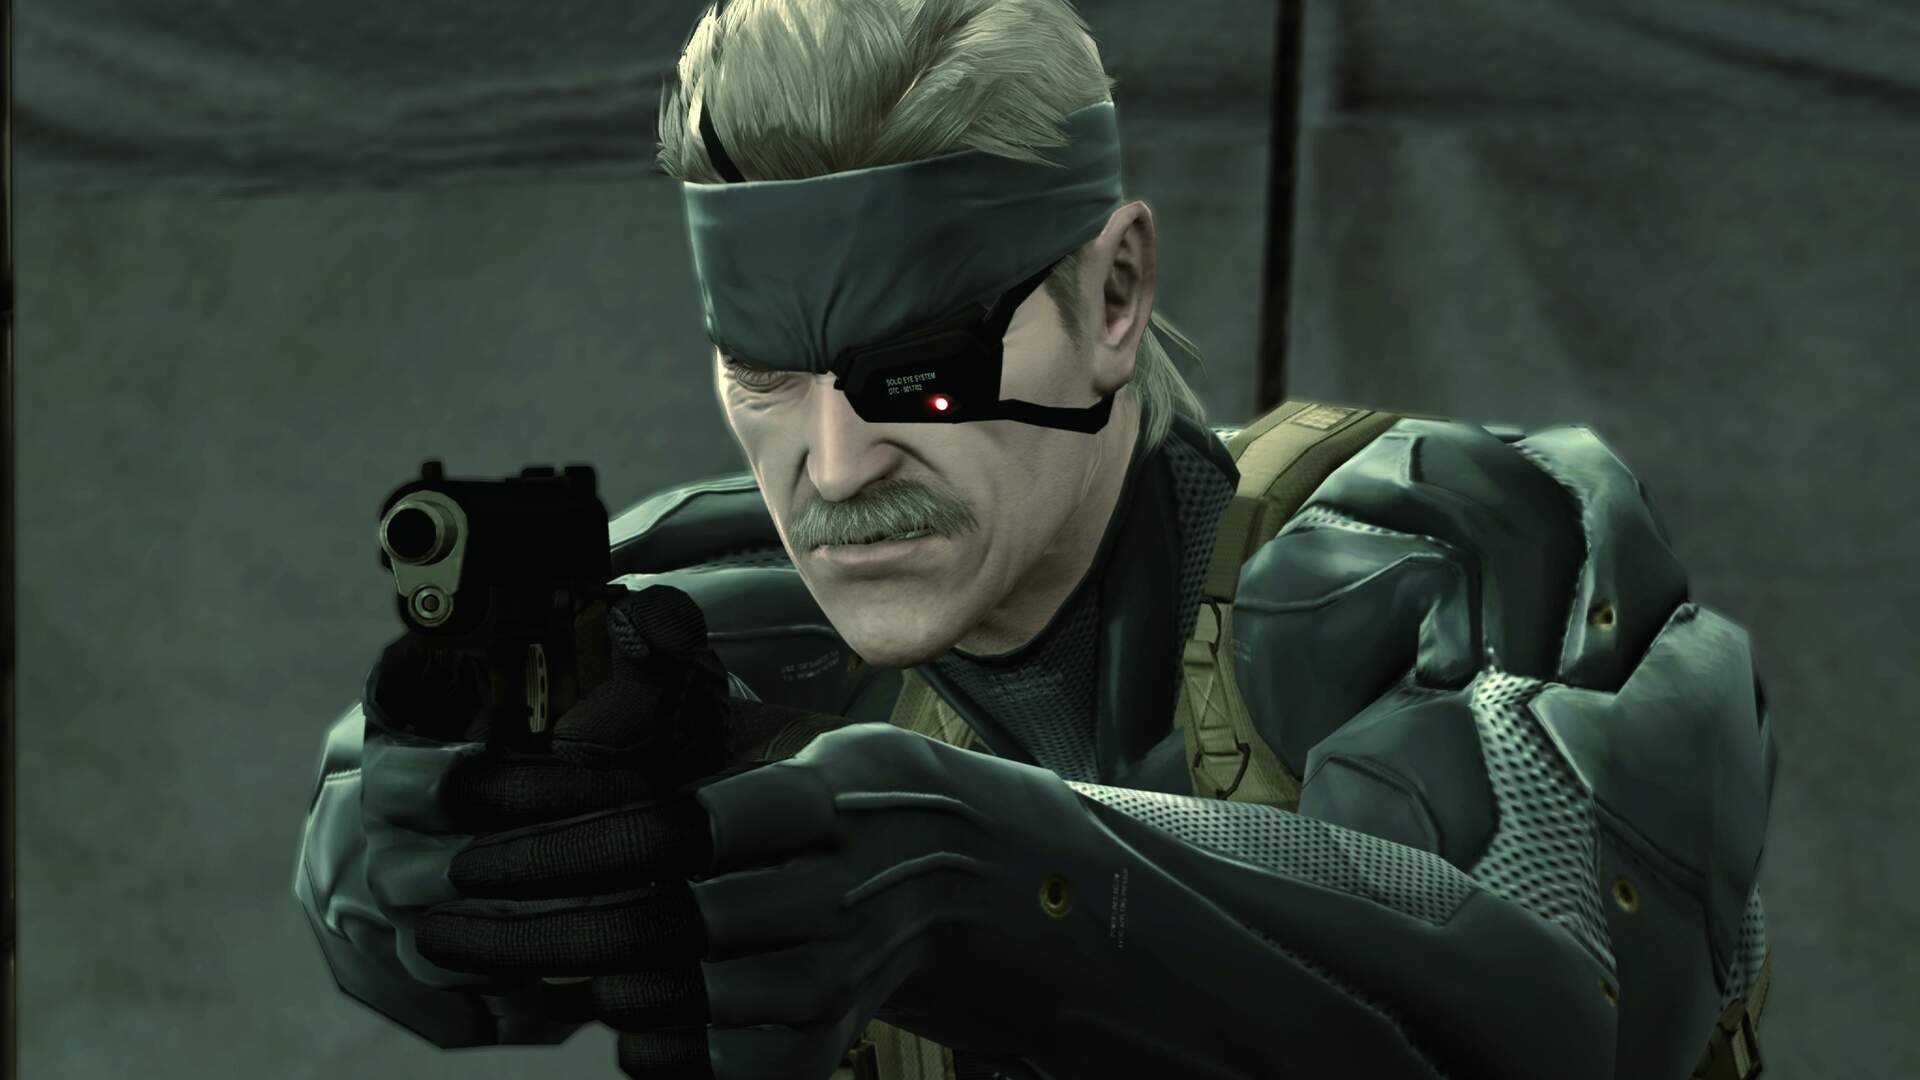 Metal Gear Solid Movie Reportedly Casts Oscar Isaac as Solid Snake